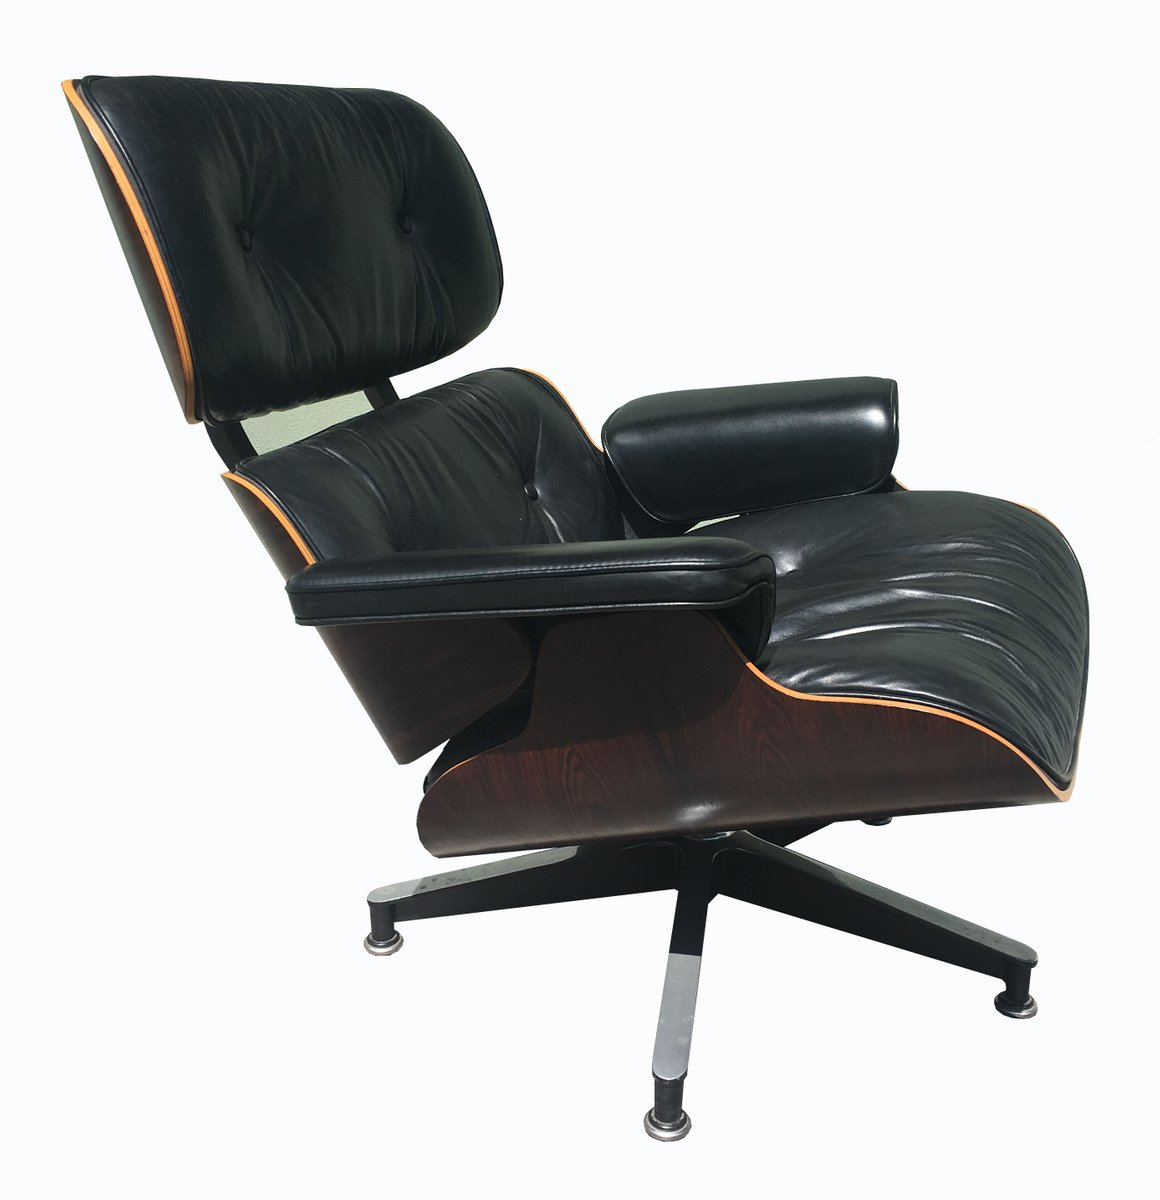 670 671 lounge chair ottoman by charles and ray eames for 1980s chair